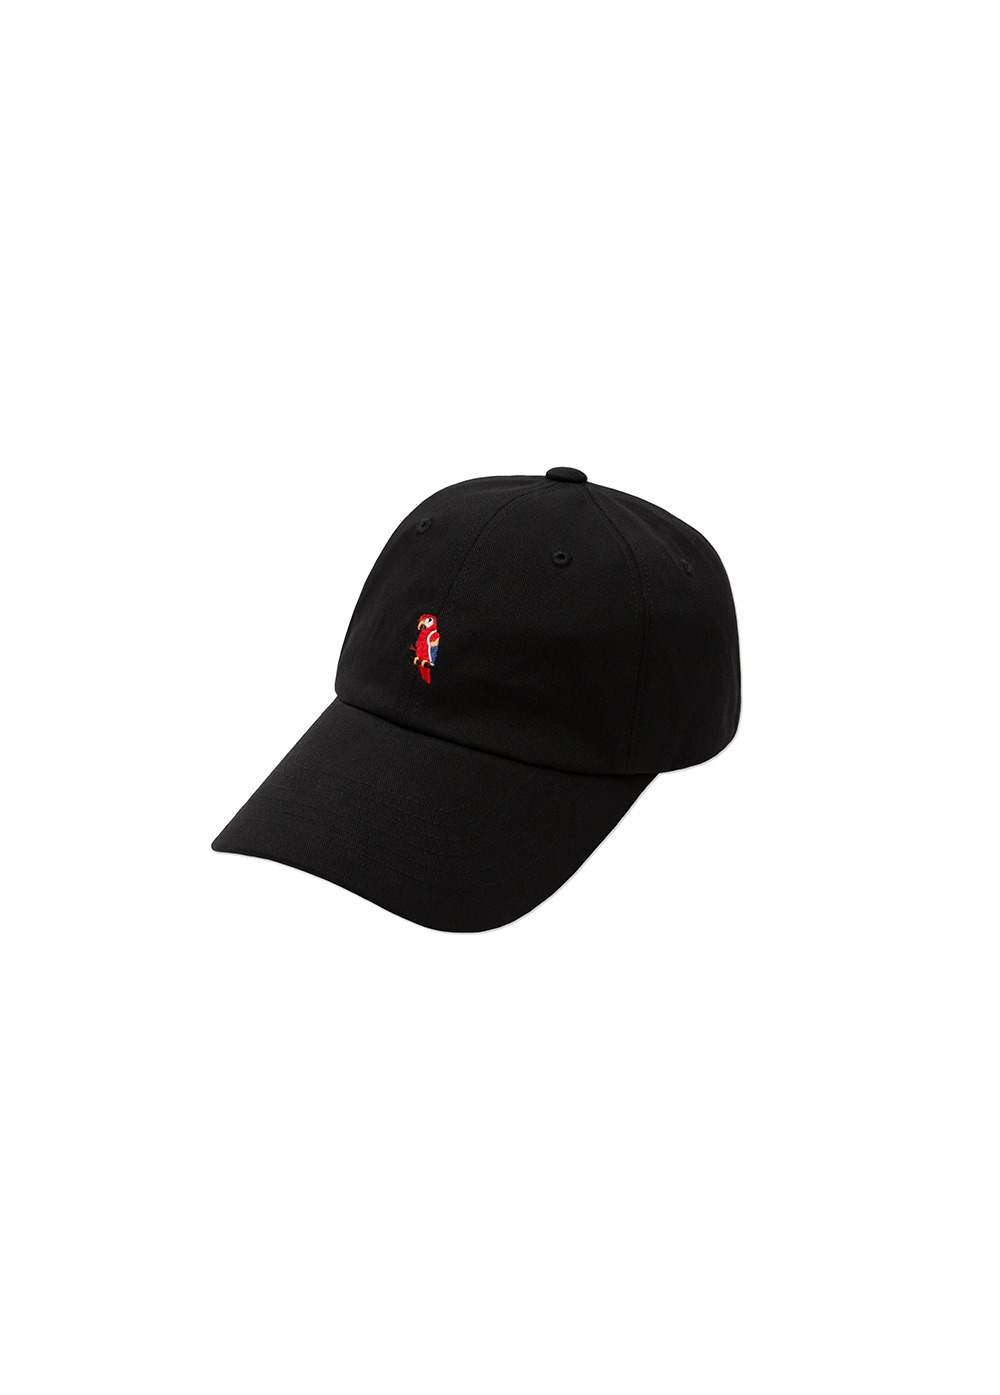 KANCO LOGO CAP black